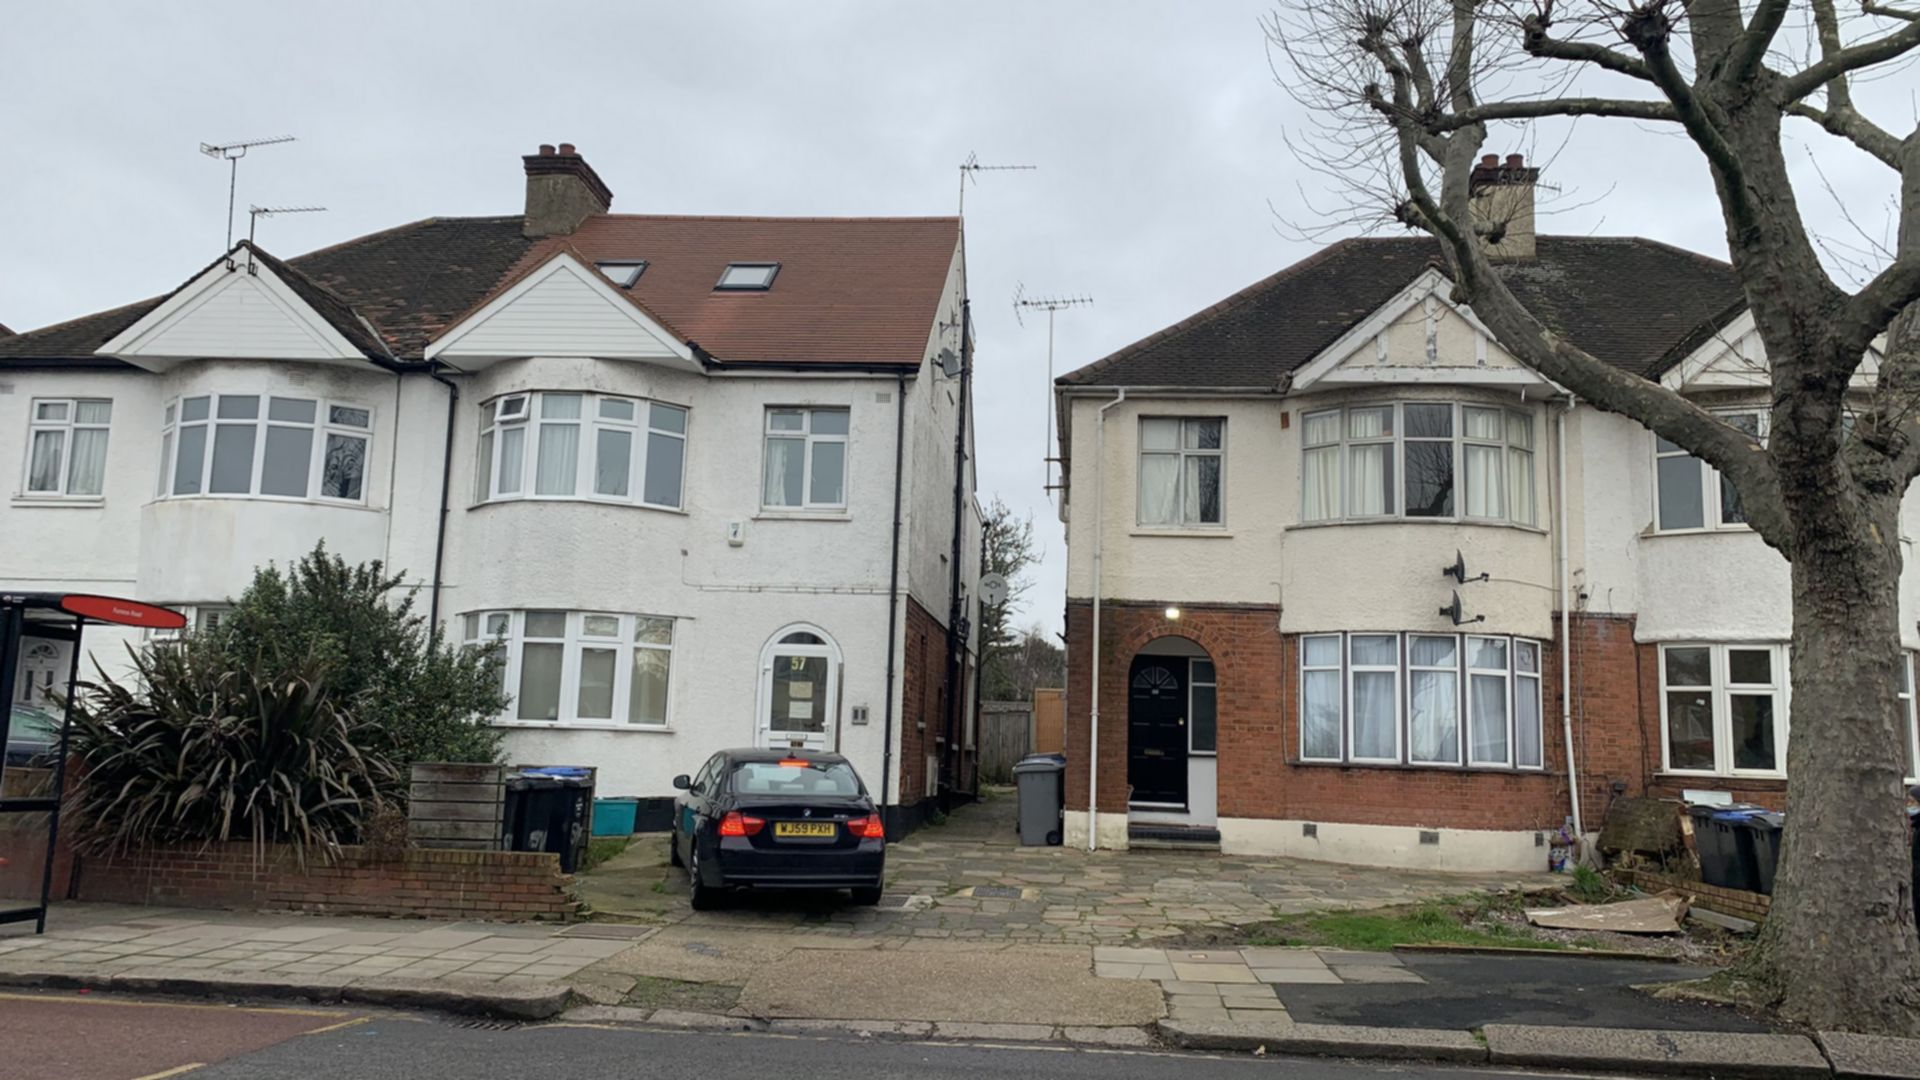 4 Bedroom 4 Bed Flat to rent in Kensal Green, London, NW10